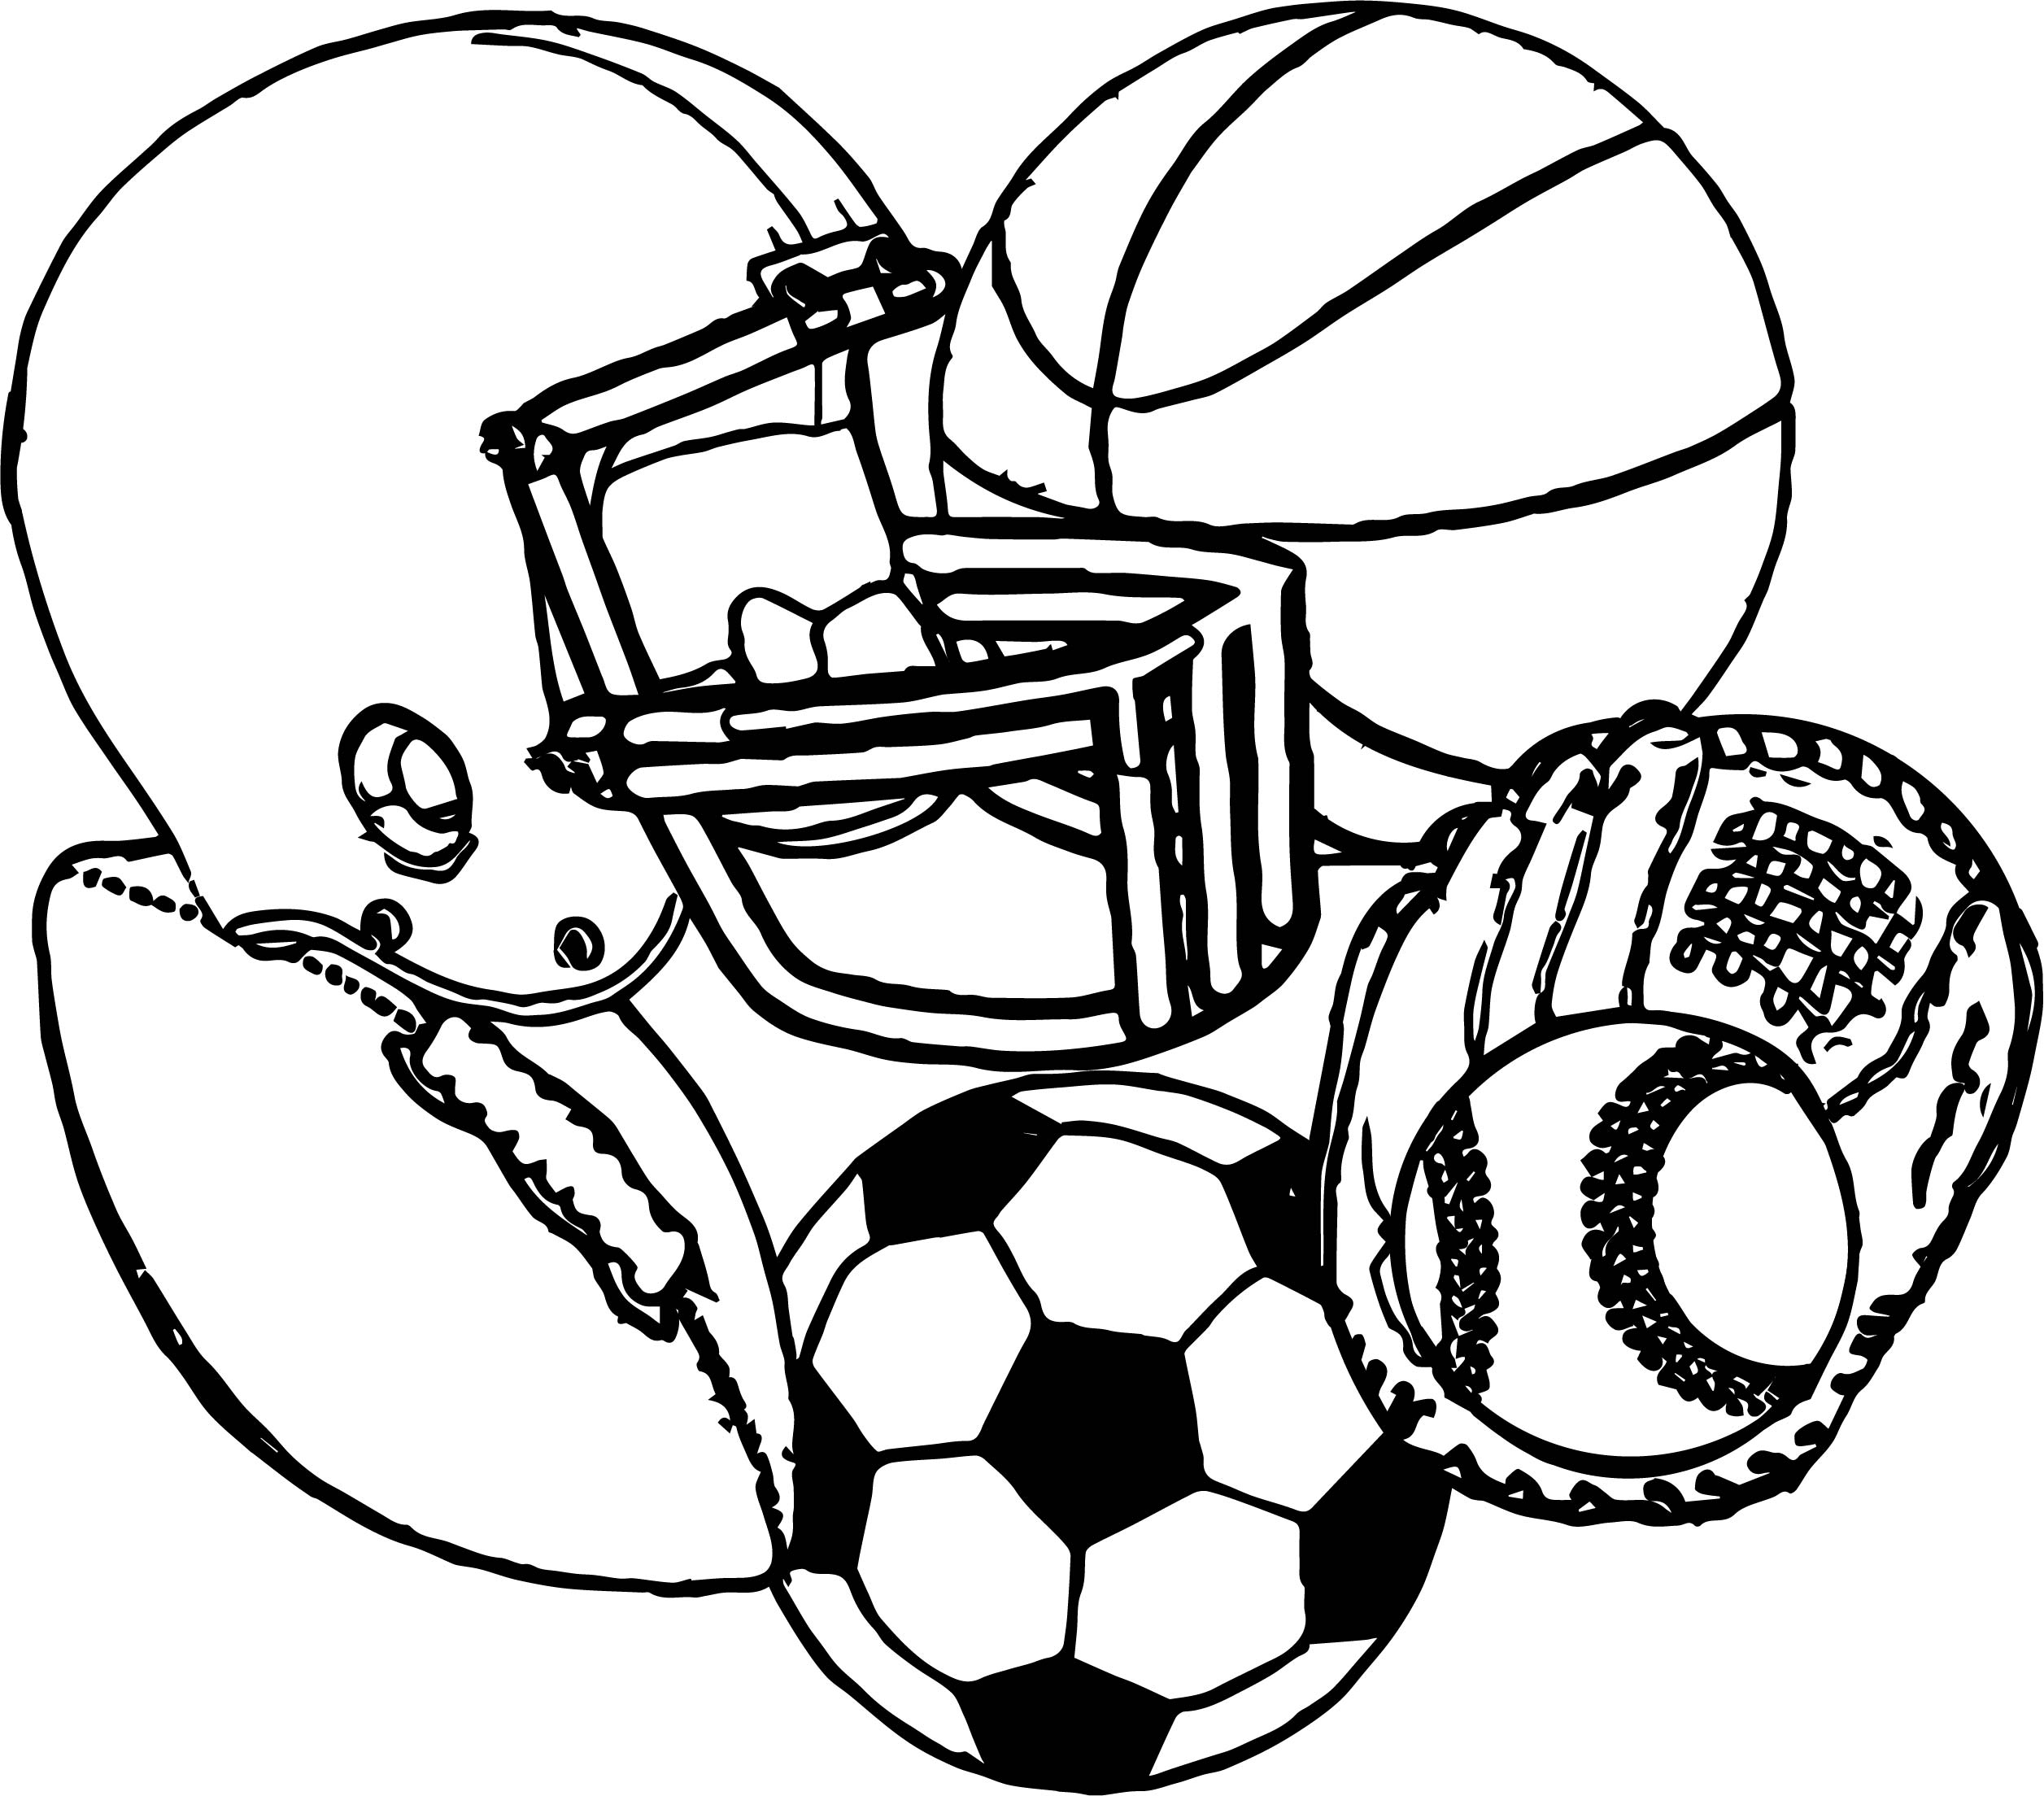 sports coloring pages - sports equipment football baseball basketball soccer coloring page